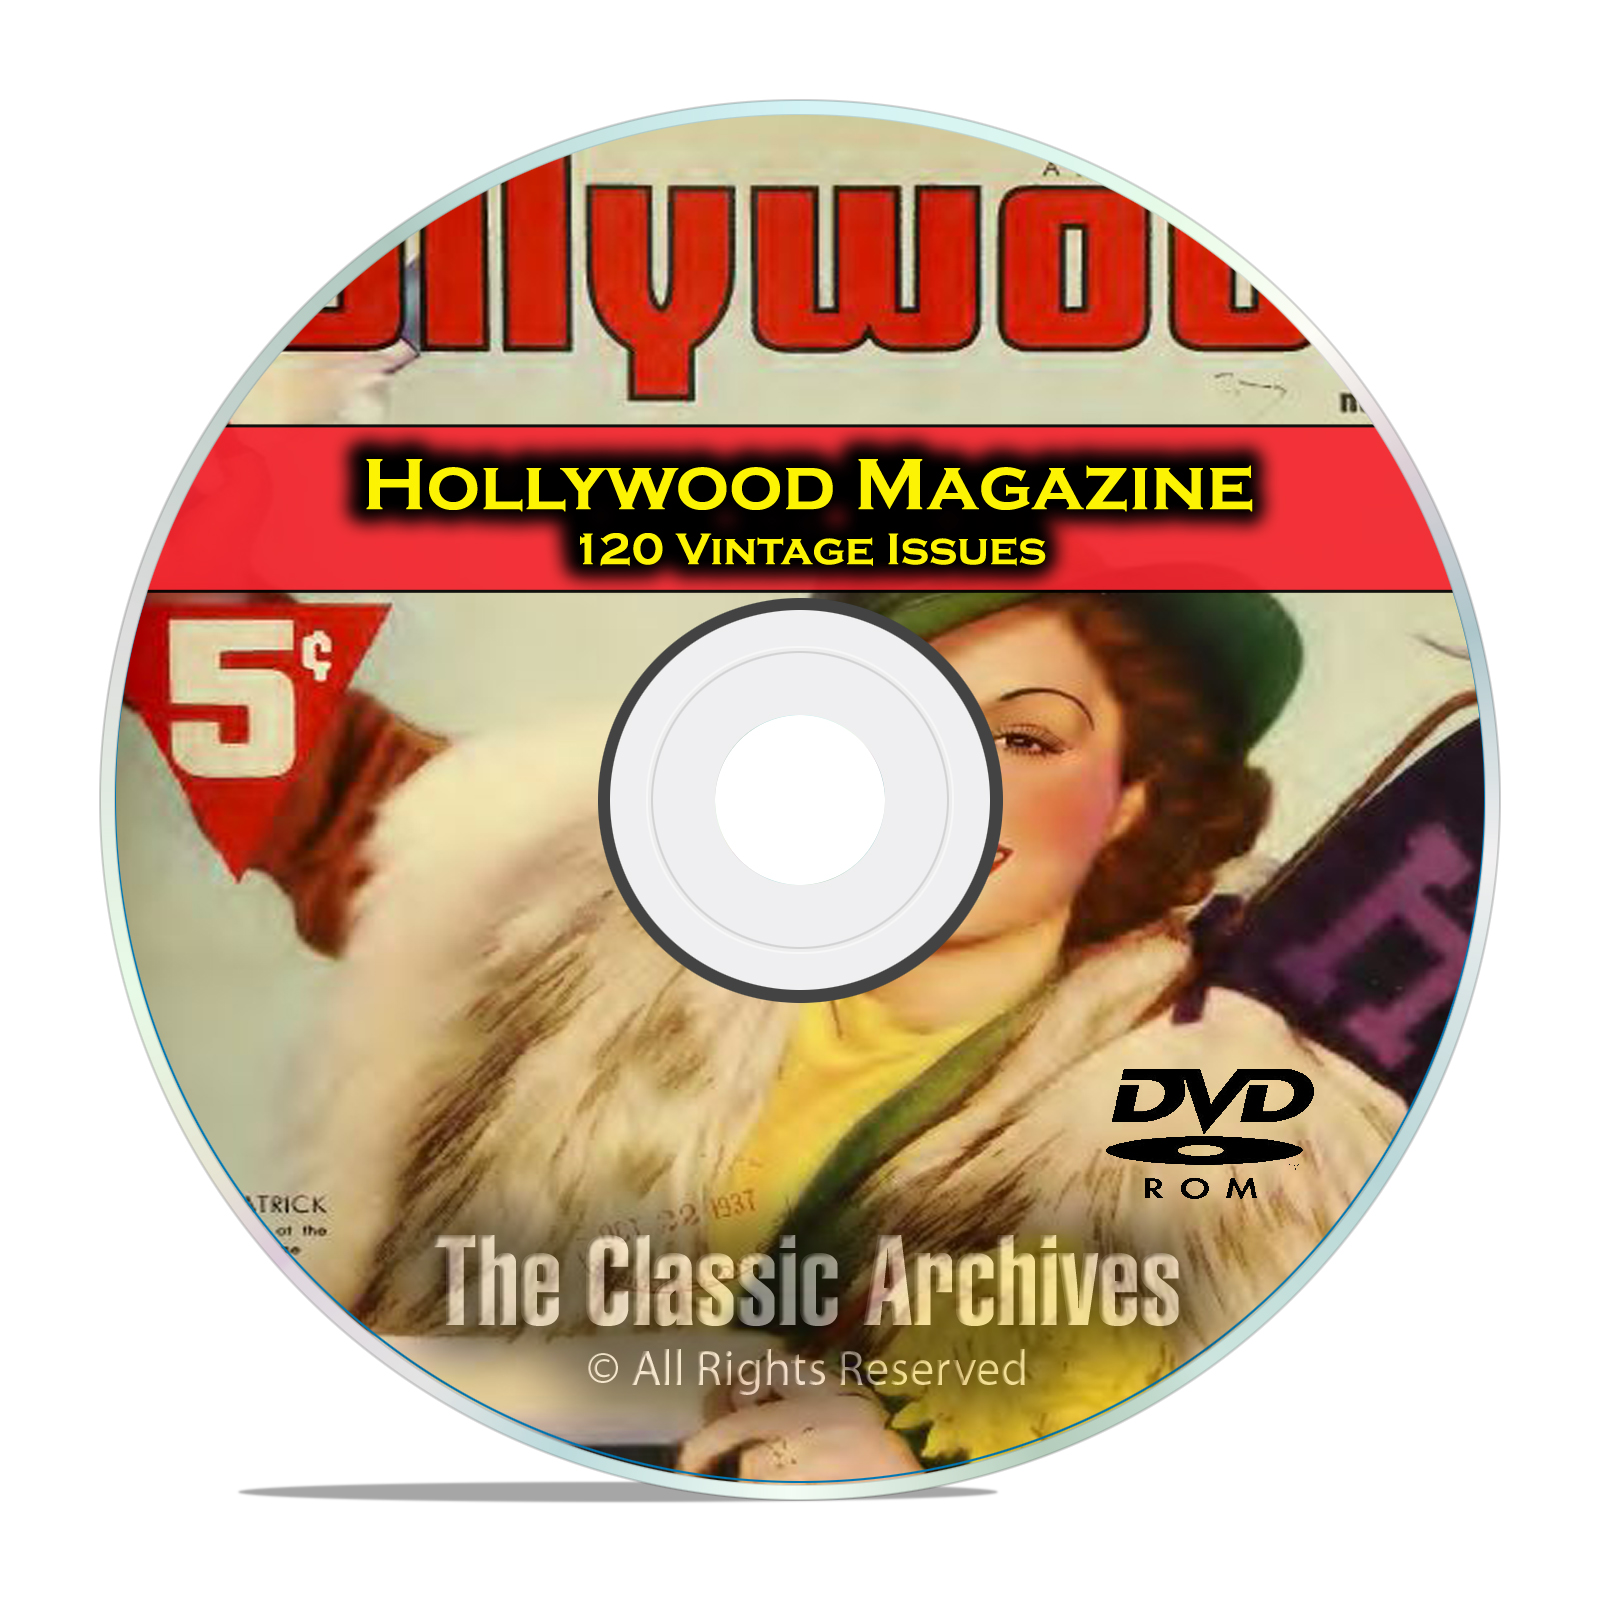 Hollywood Magazine, 120 Vintage issues, Golden Movie Age, 1934-1963, DVD - Click Image to Close